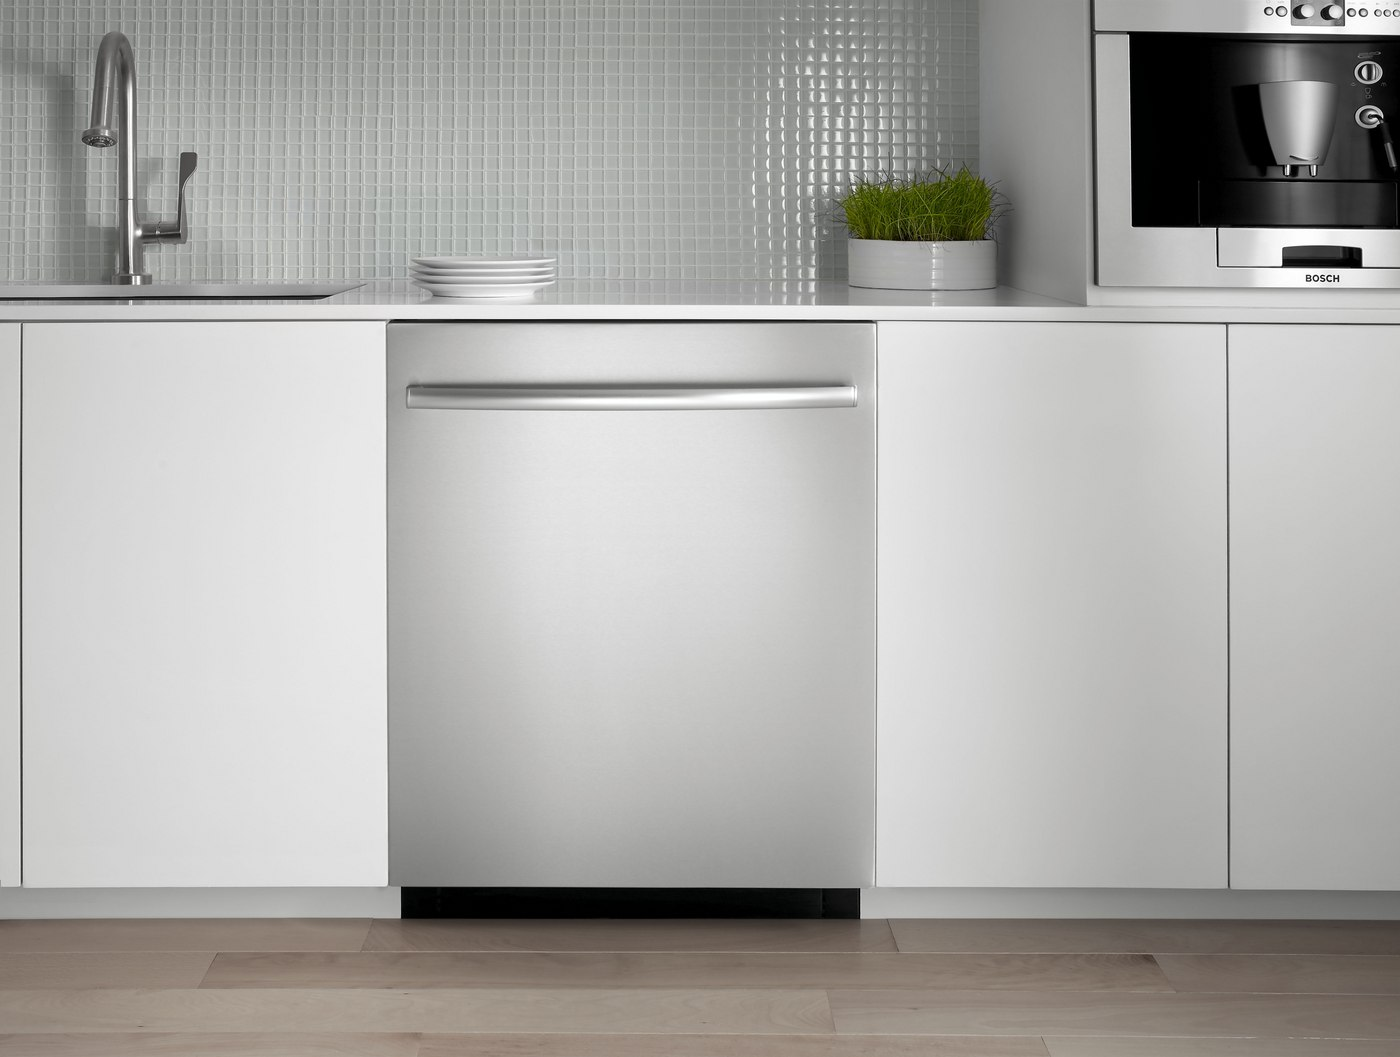 American Style Vs European Style Dishwashers (reviews